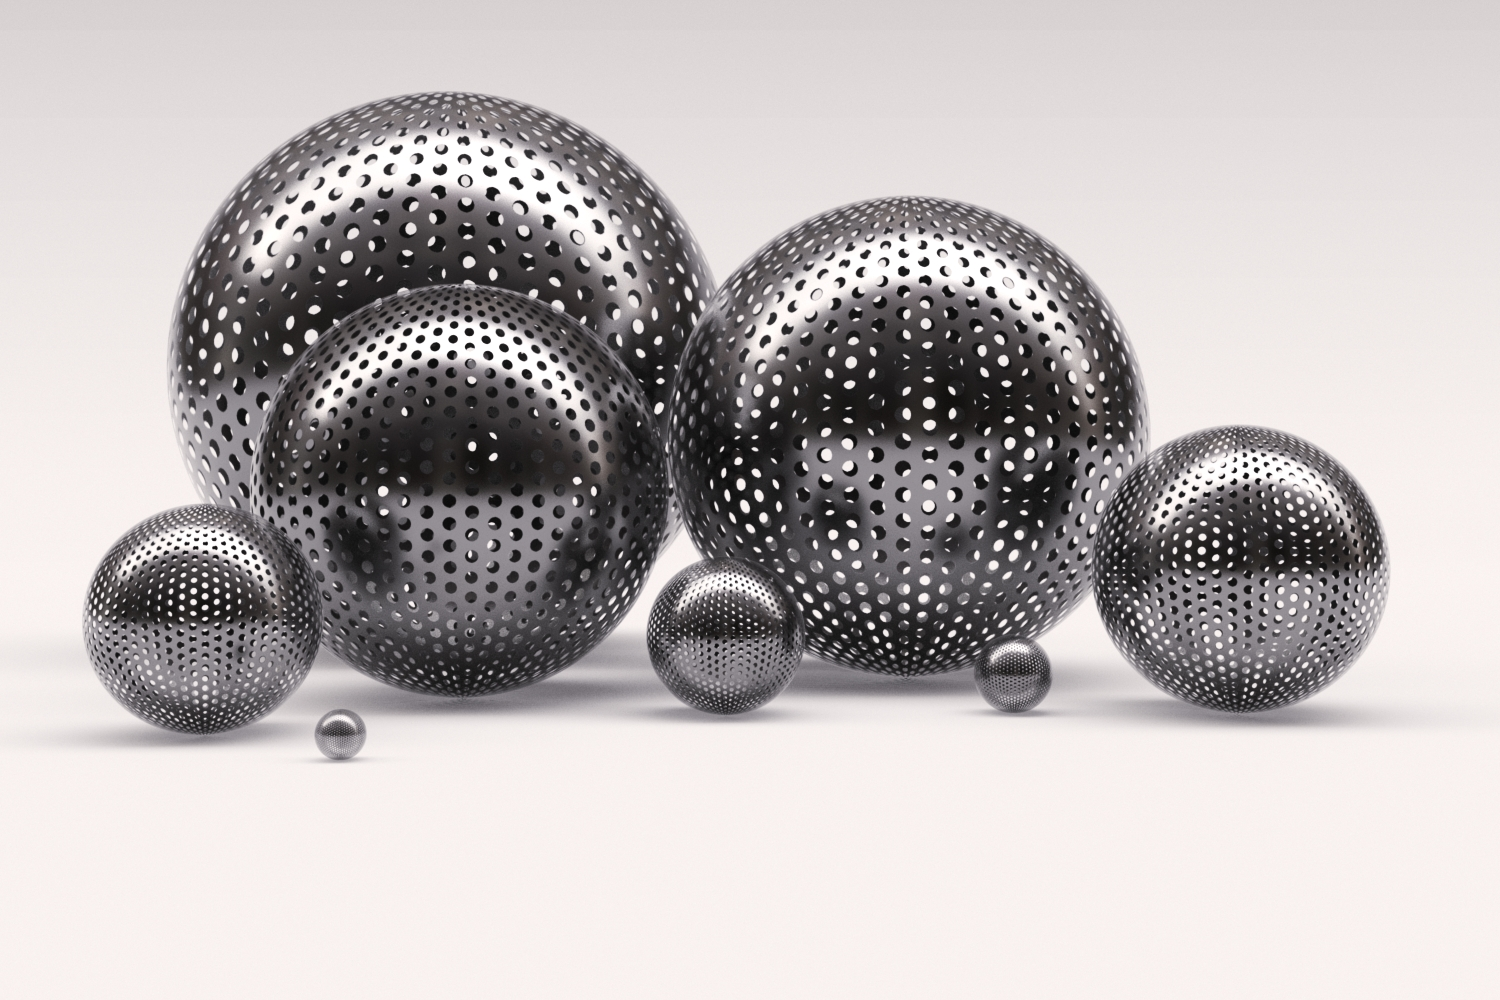 Vray Metal Shaders Collection By Grecoarch360 3docean